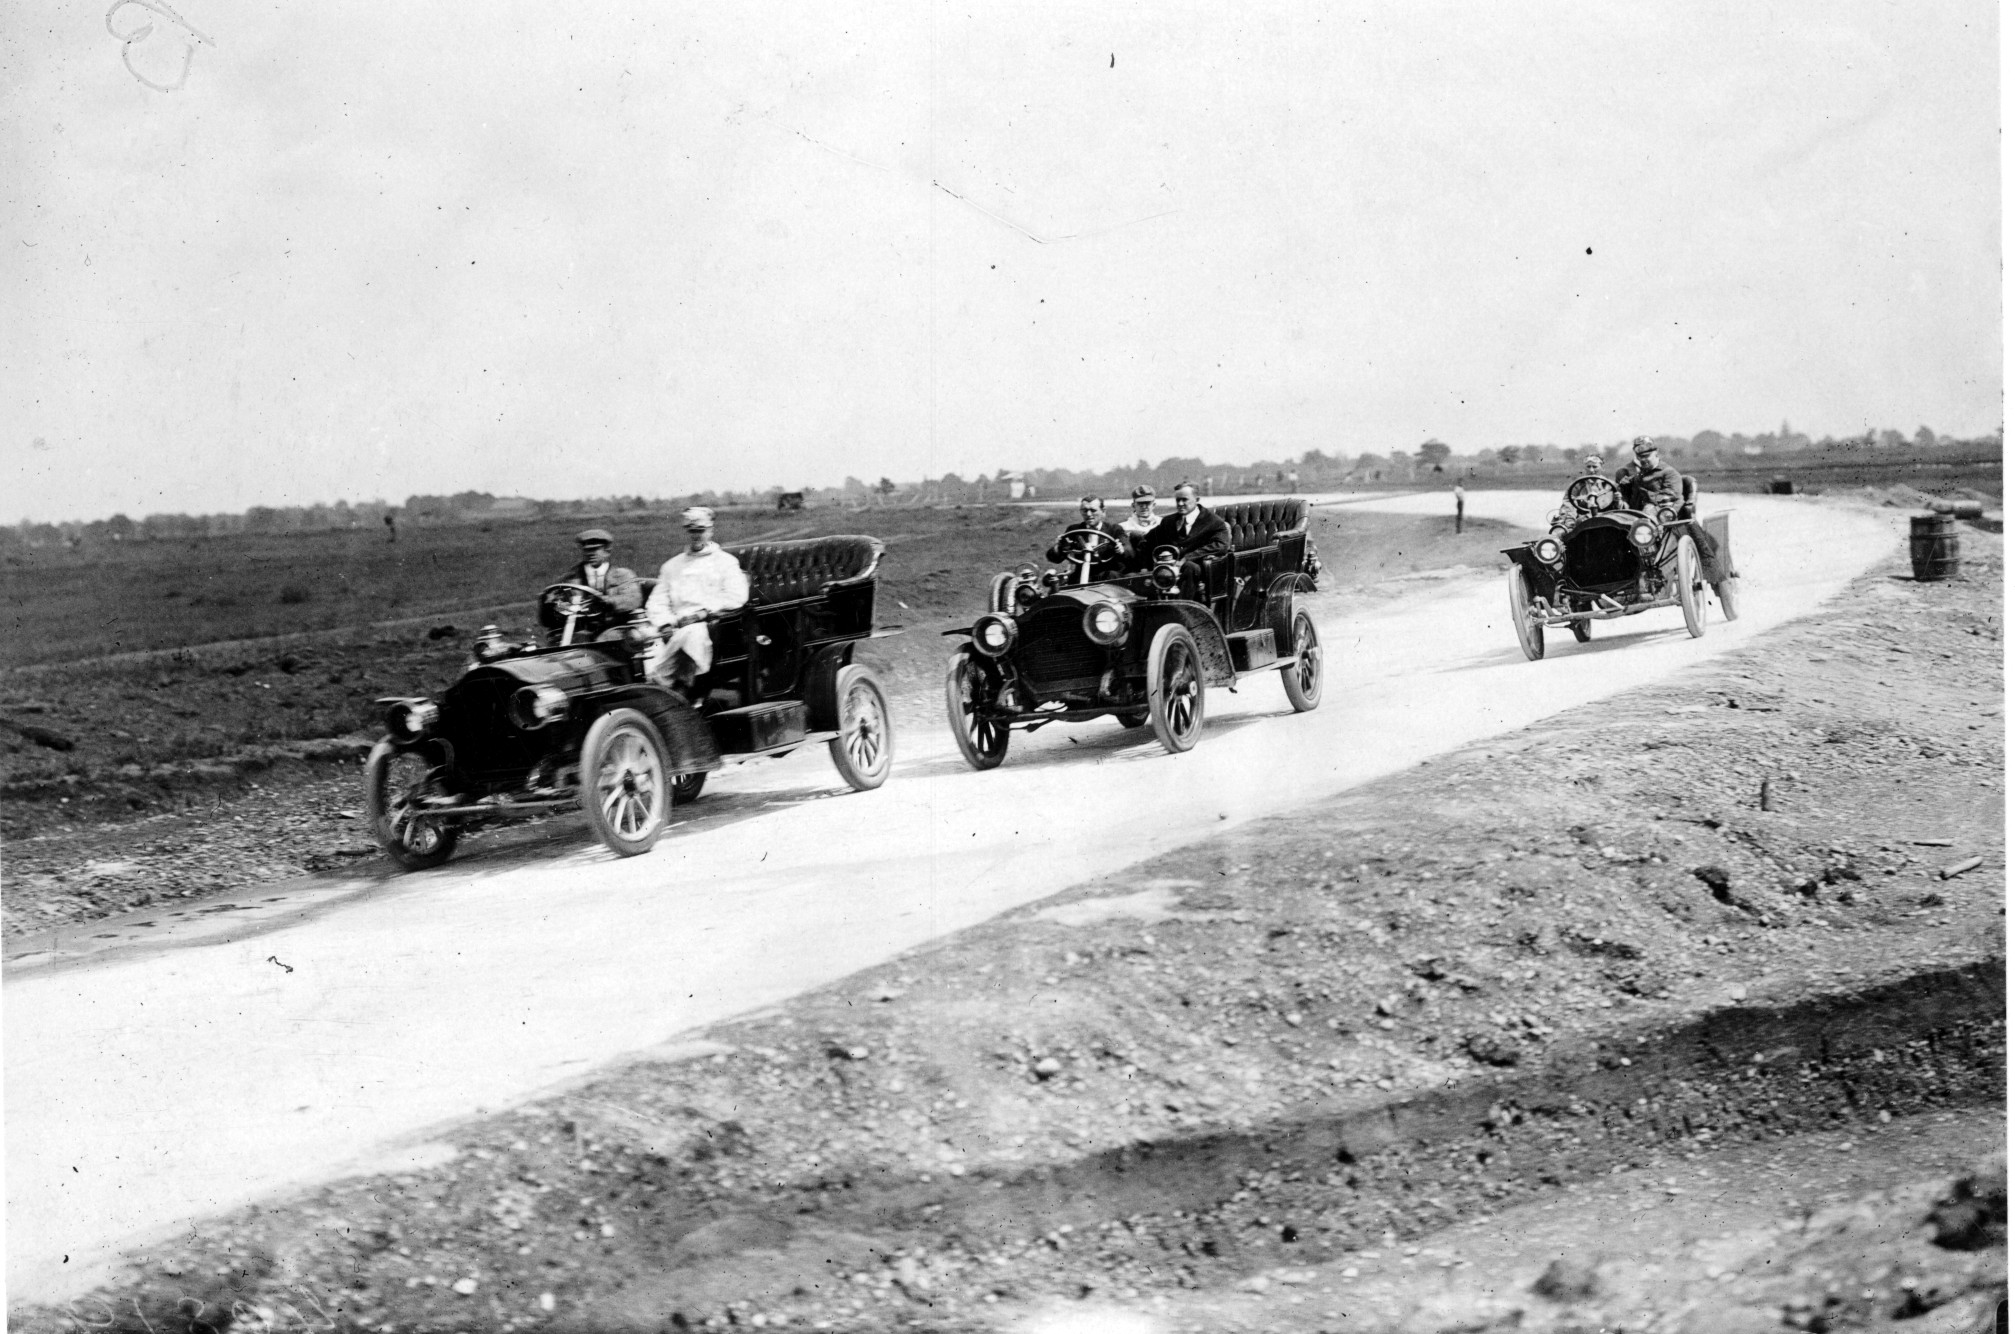 An inspection team in Packard automobiles on the Long Island Motor Parkway prior to its opening in October 1908. The photograph was taken to highlight roadway width and the banking of the road's surface — features important to the Vanderbilt Cup Races.